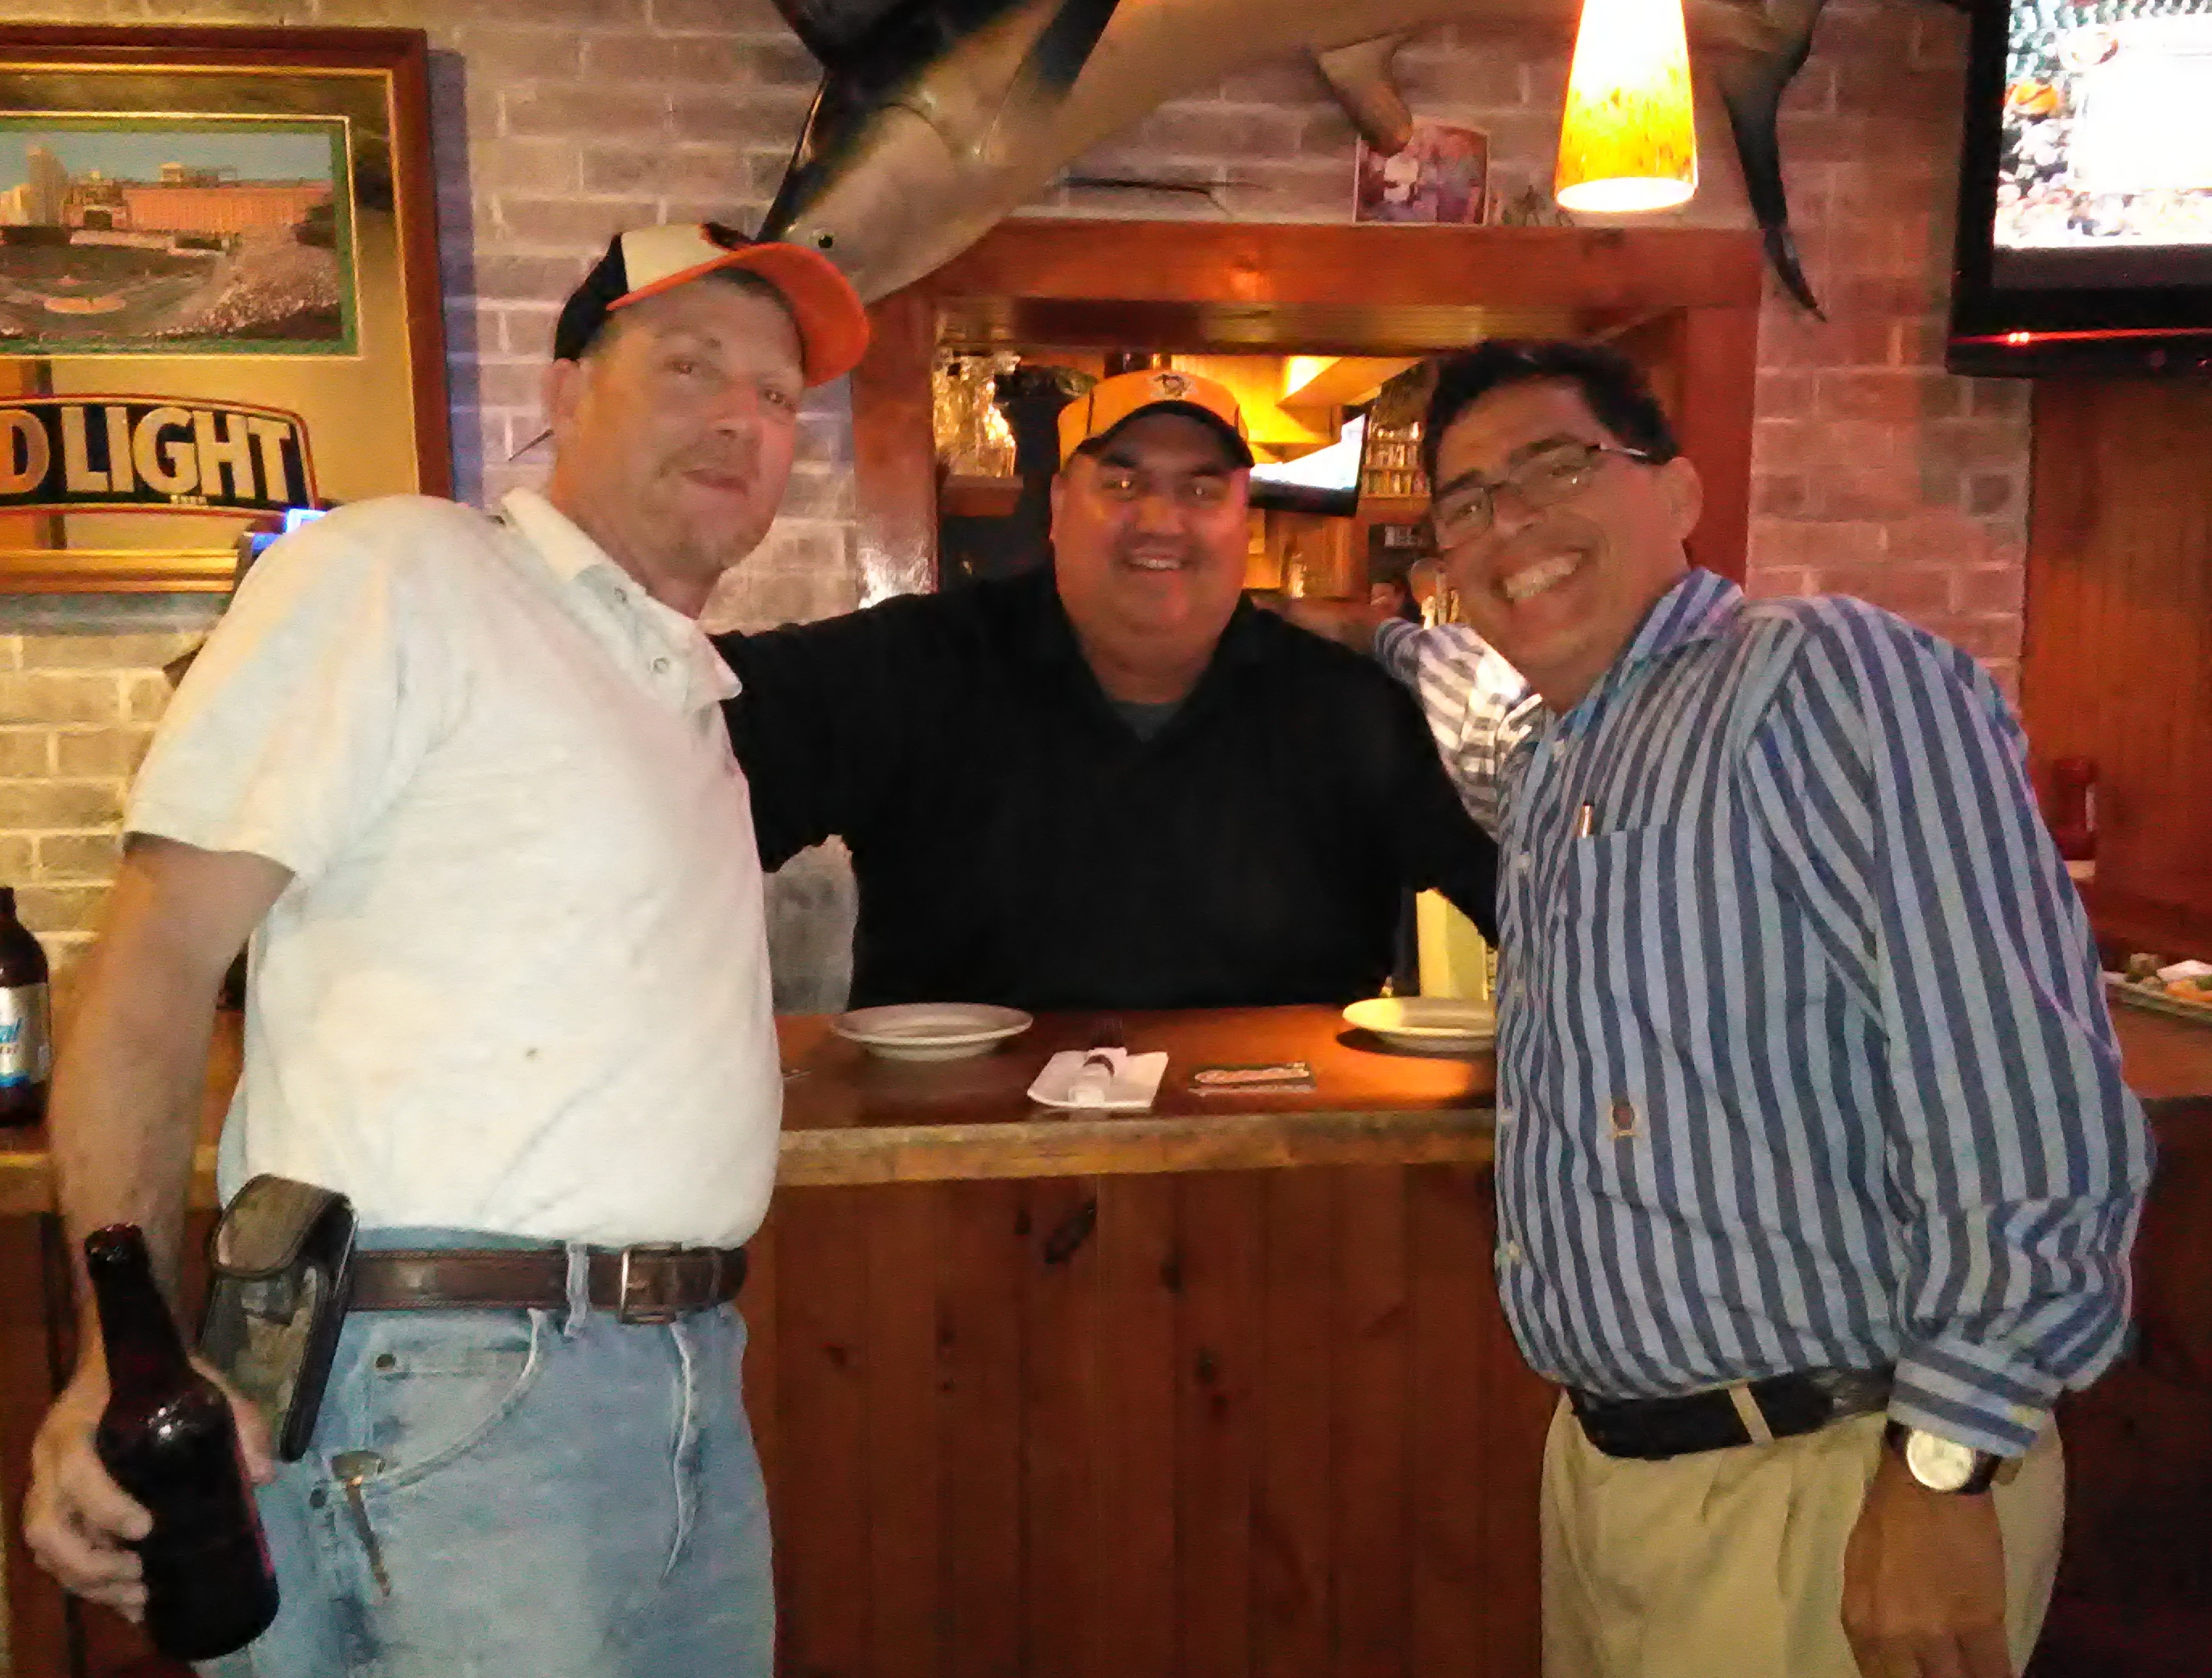 with William F. Pusey(Buddy), the Mayor of Fruitland, Md. and Adams Rib owner, Paul Rosko